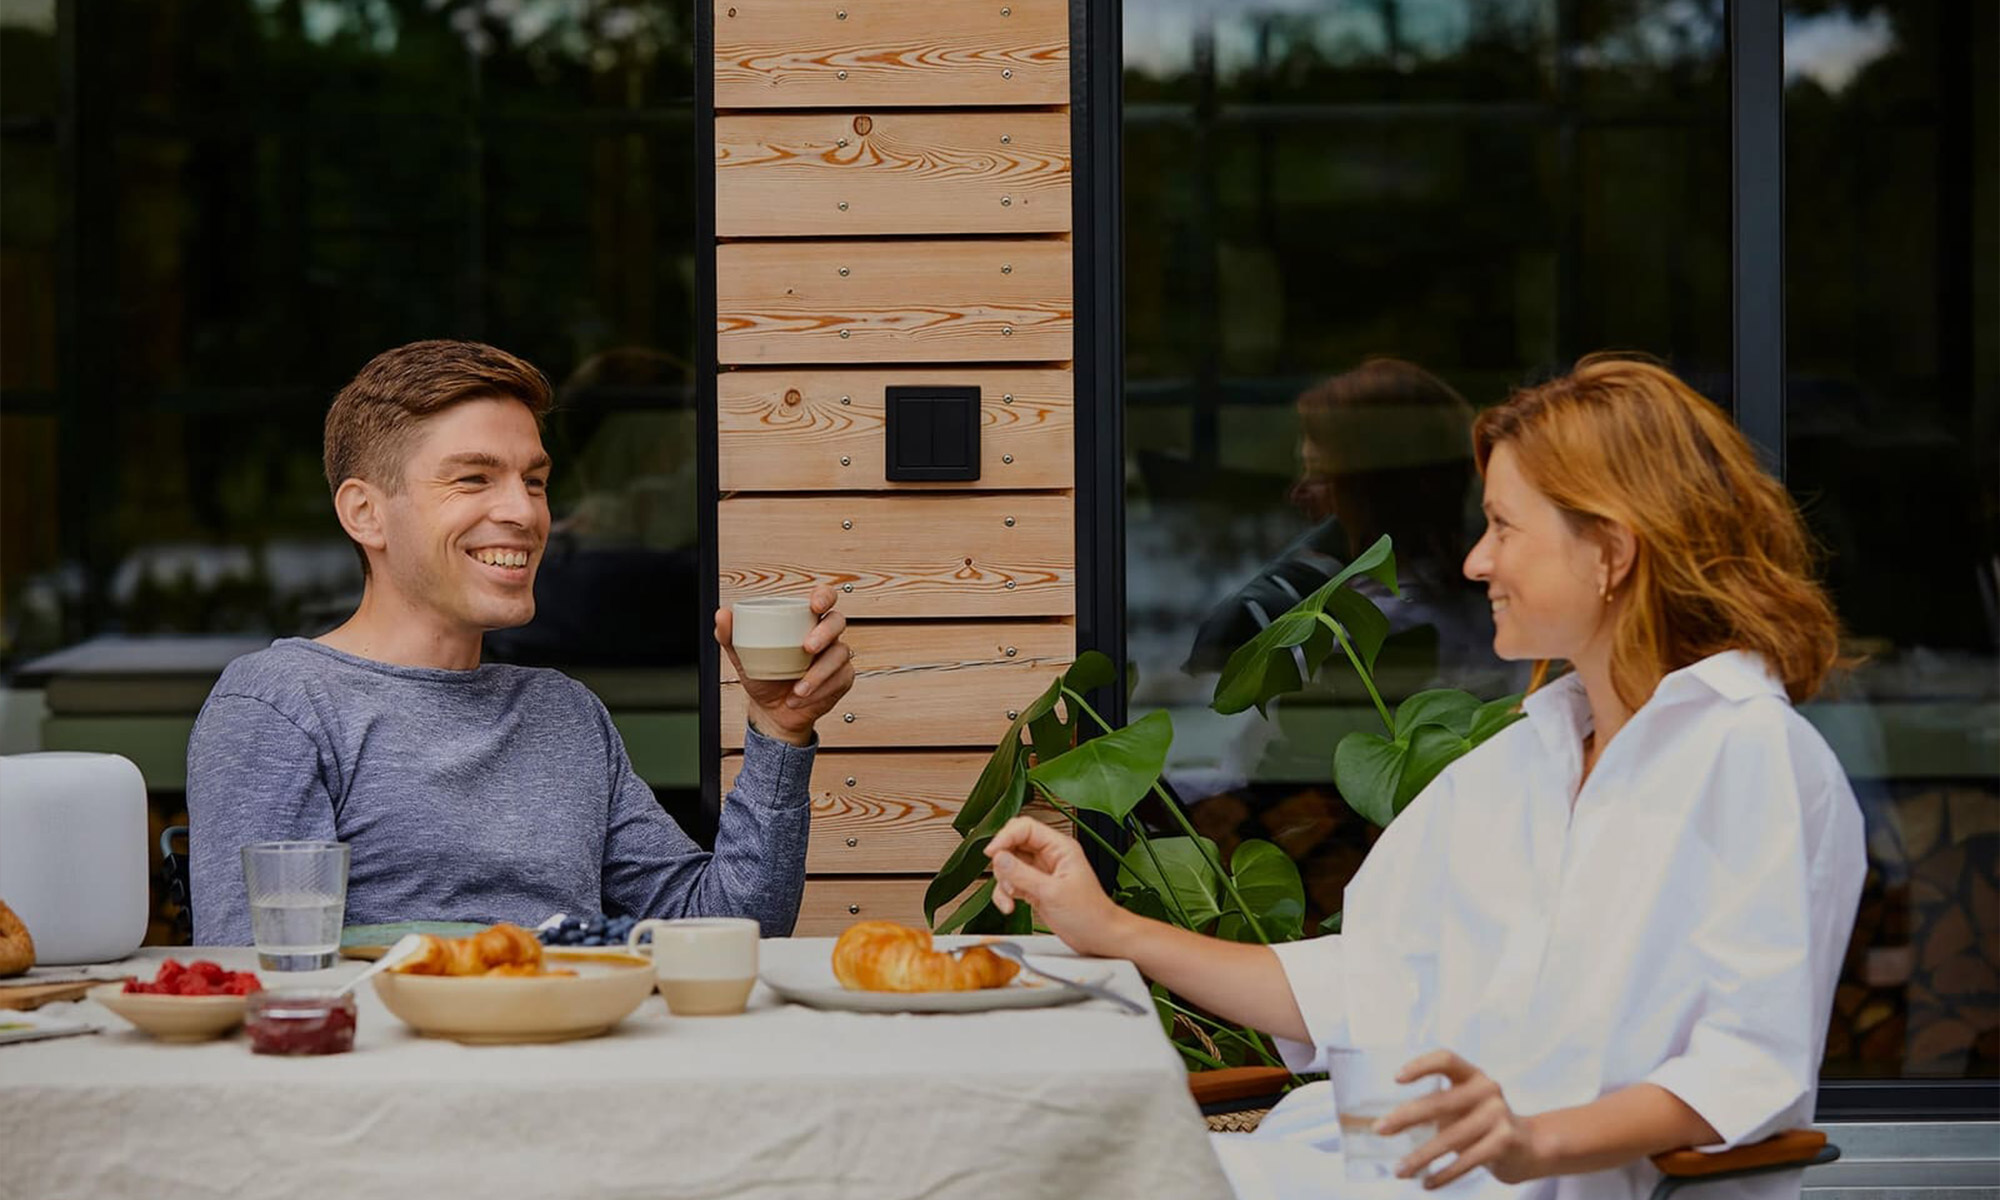 outdoor brunch with friends outdoor switch